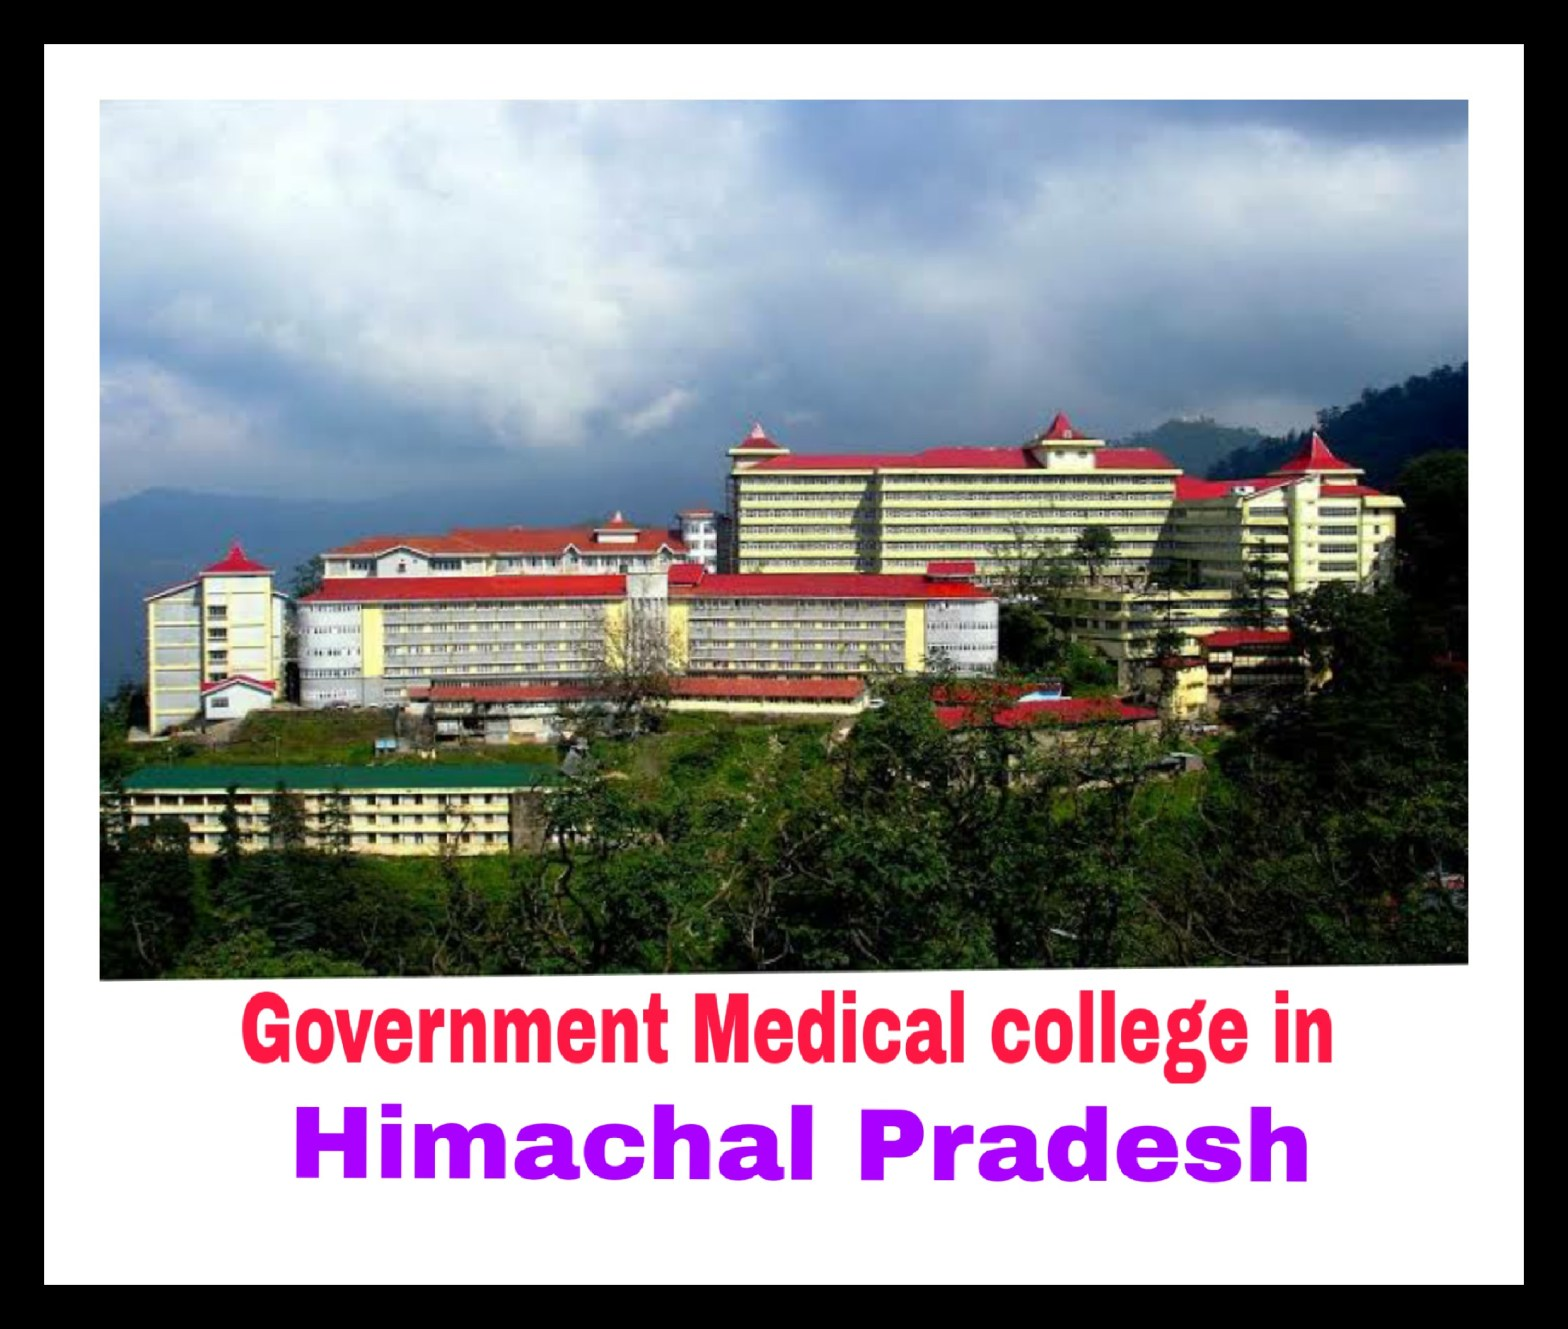 Government Medical college in Himachal Pradesh